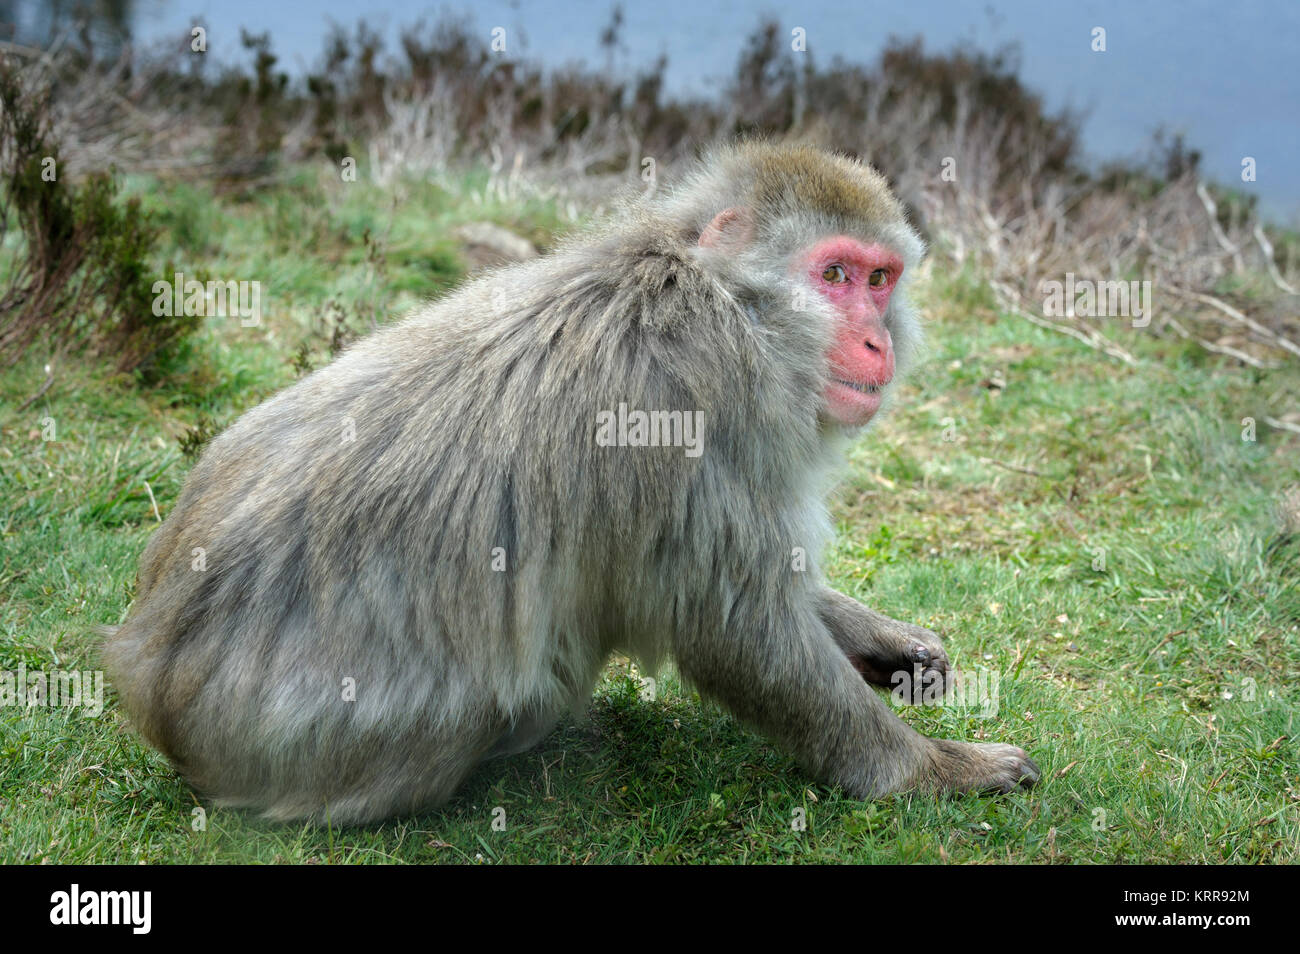 Snow Monkey Japanese Macaque Macaca fuscata in captivity Stock Photo